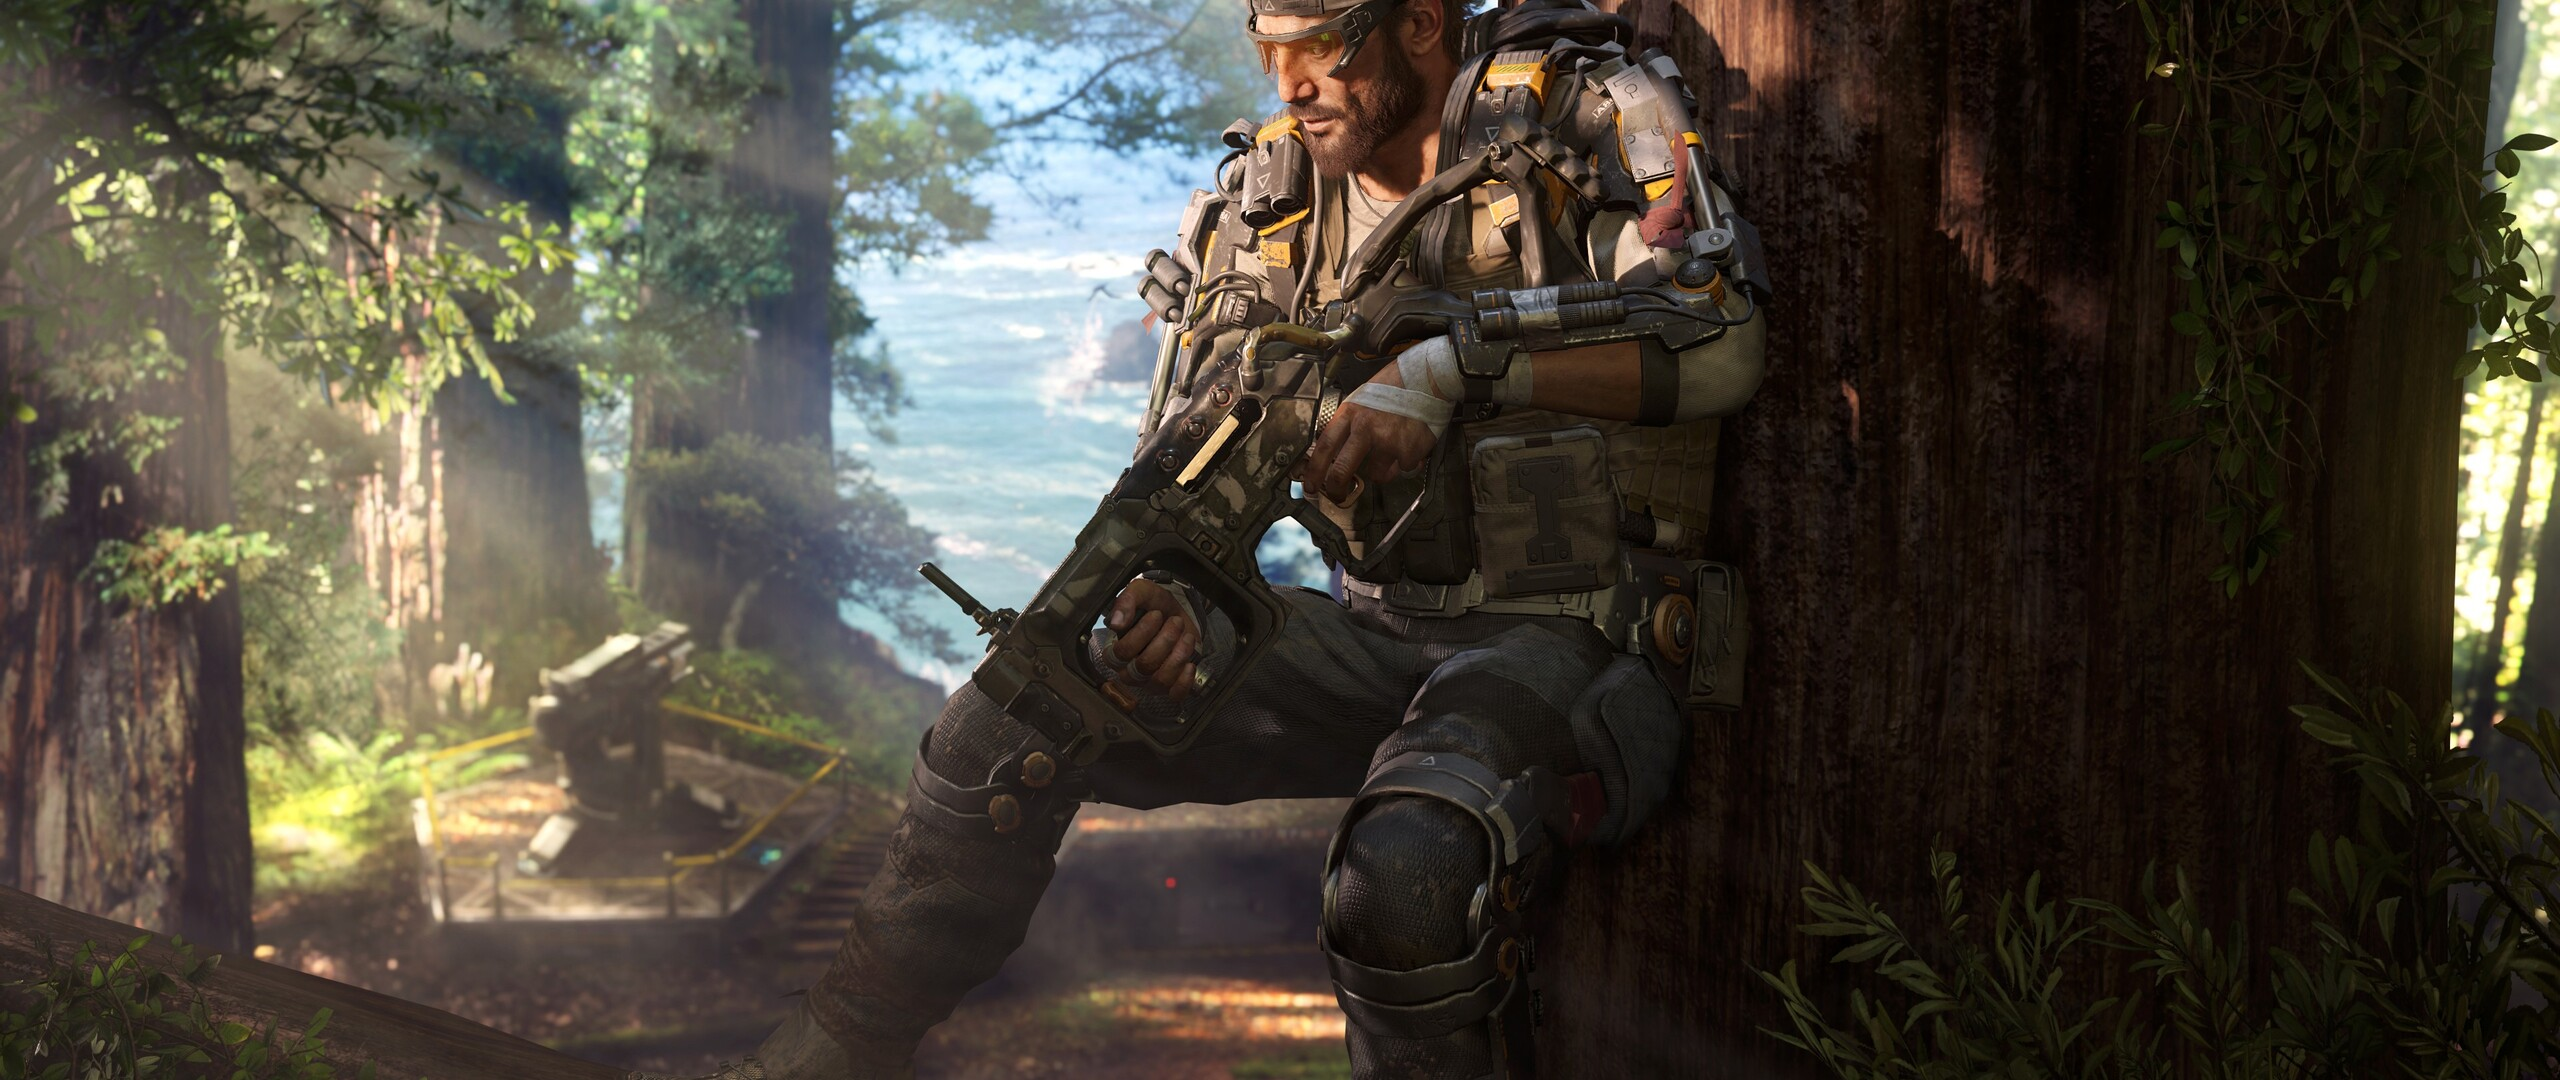 2560x1080 Call Of Duty Black Ops 3 Specialist 2560x1080 Resolution Hd 4k Wallpapers Images Backgrounds Photos And Pictures